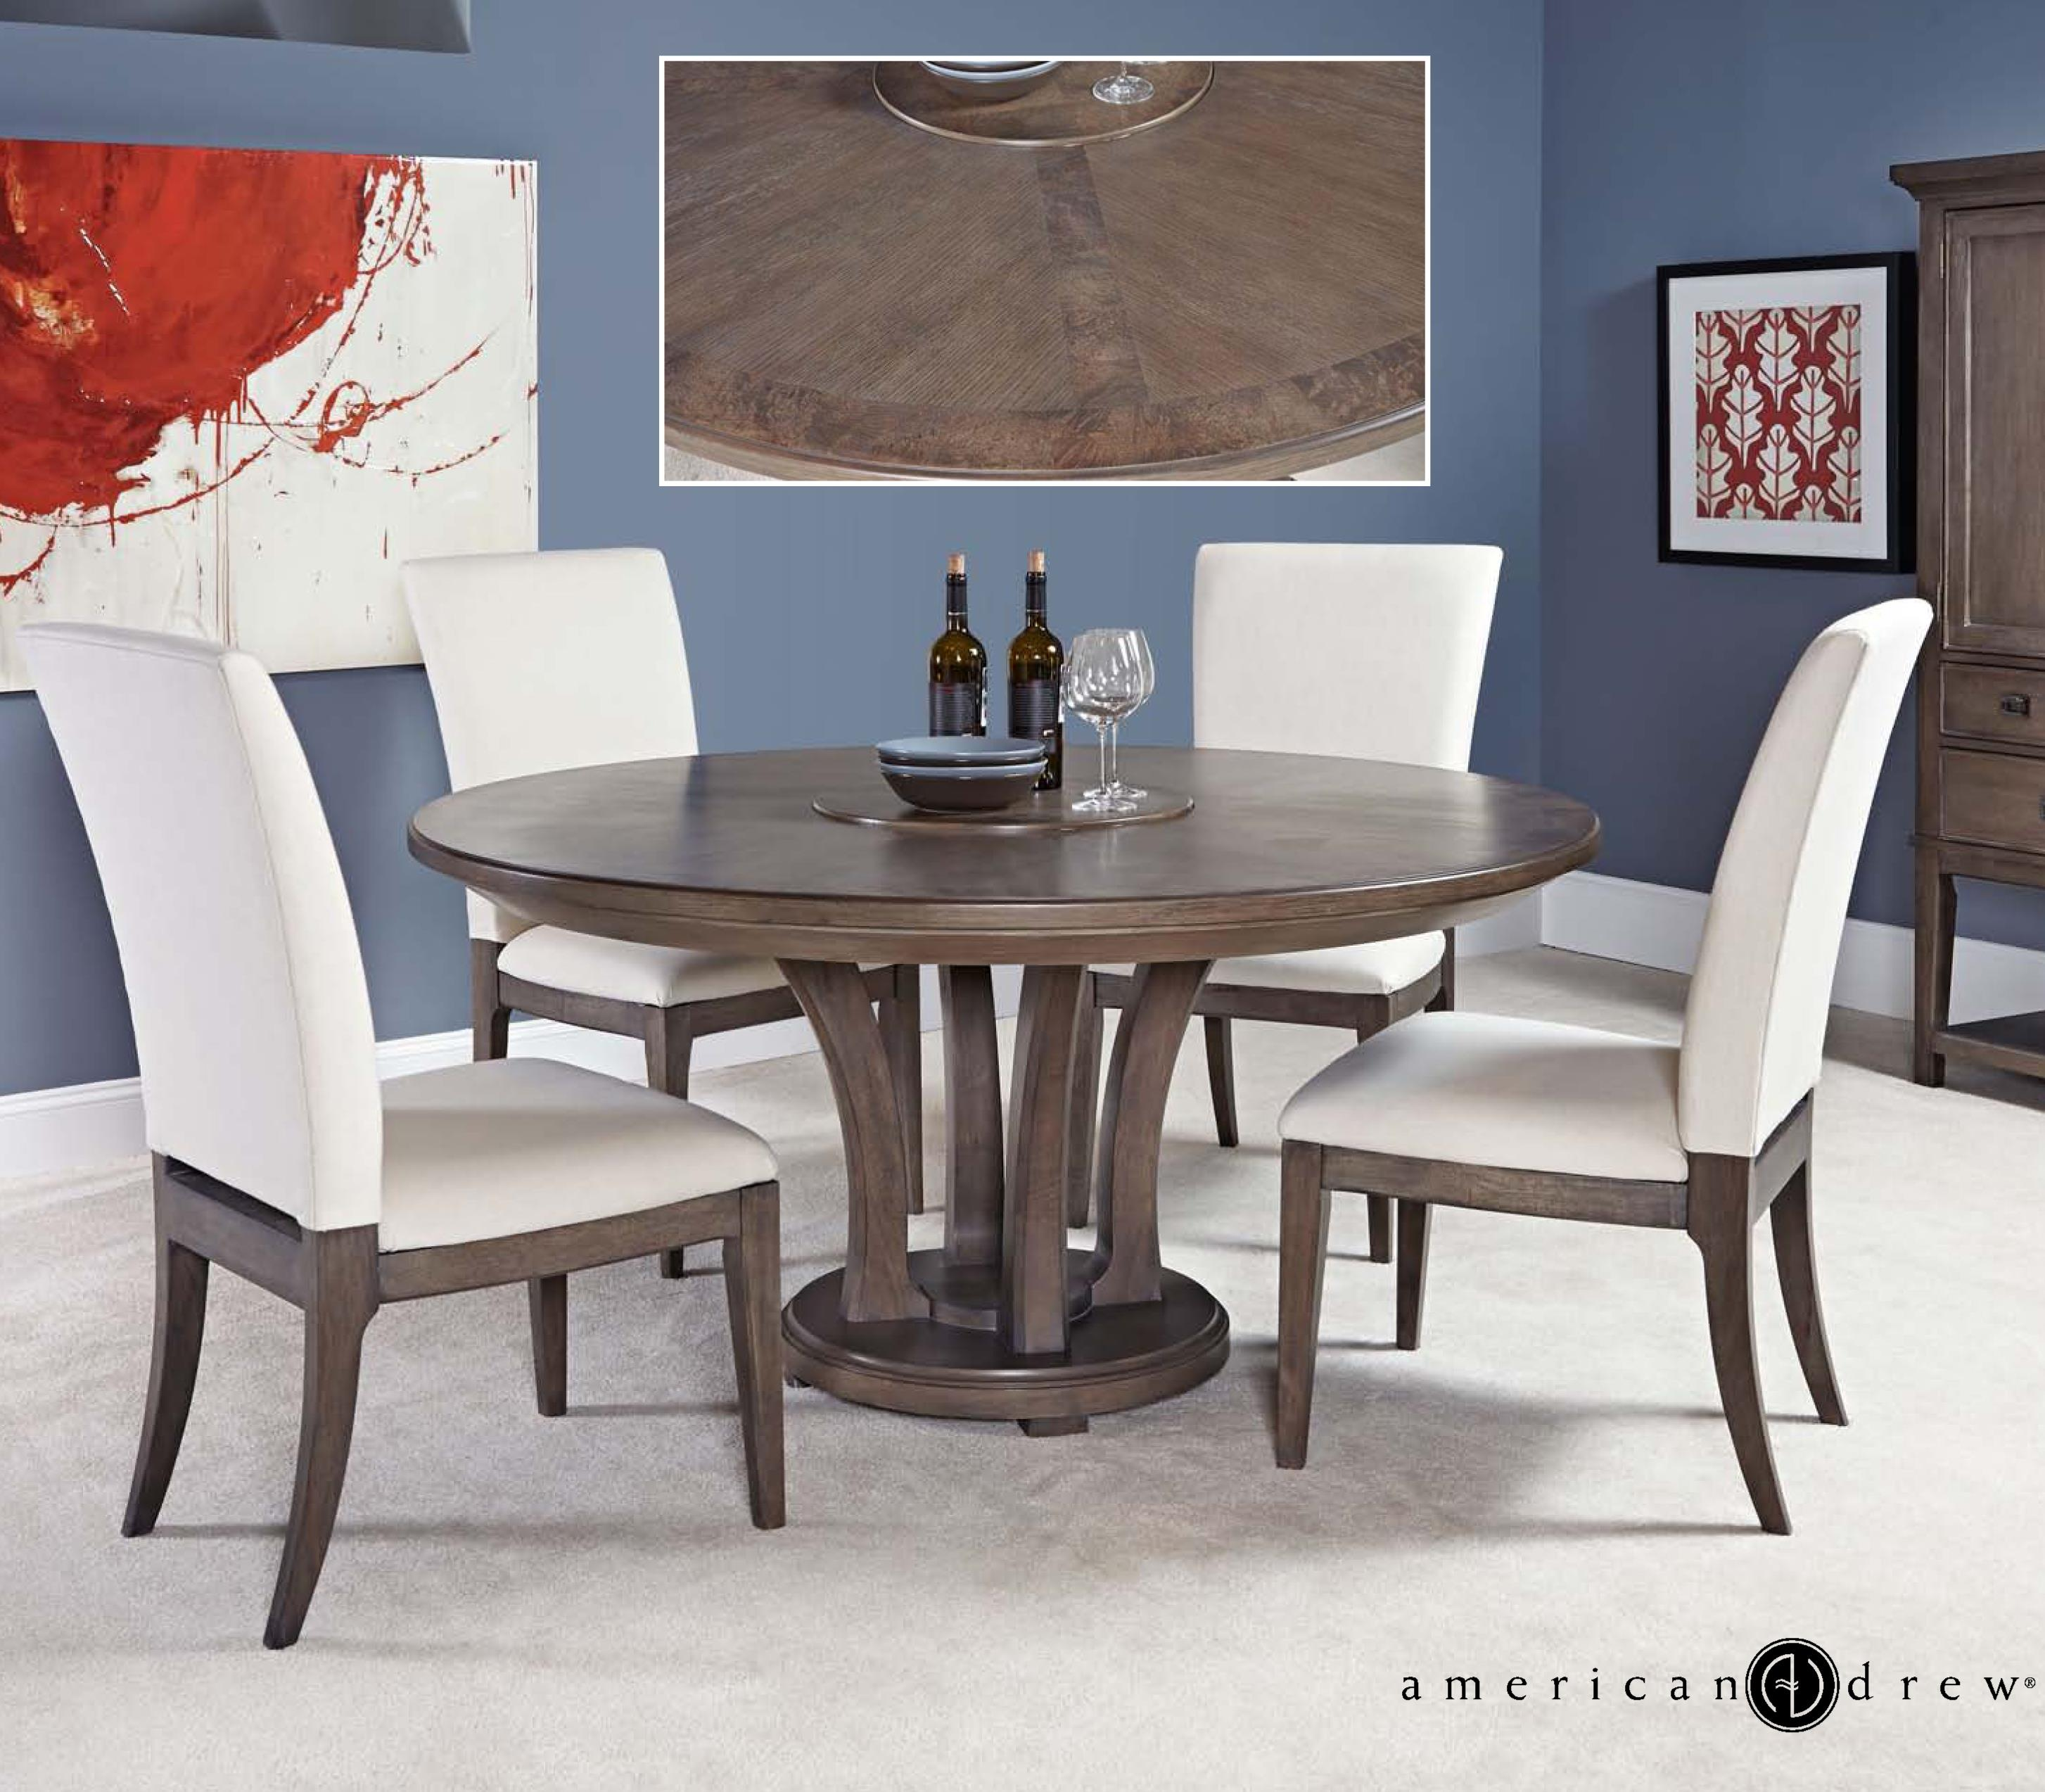 American Drew Park Studio 5 Piece Dining Set - Item Number: 488-701R+4x622